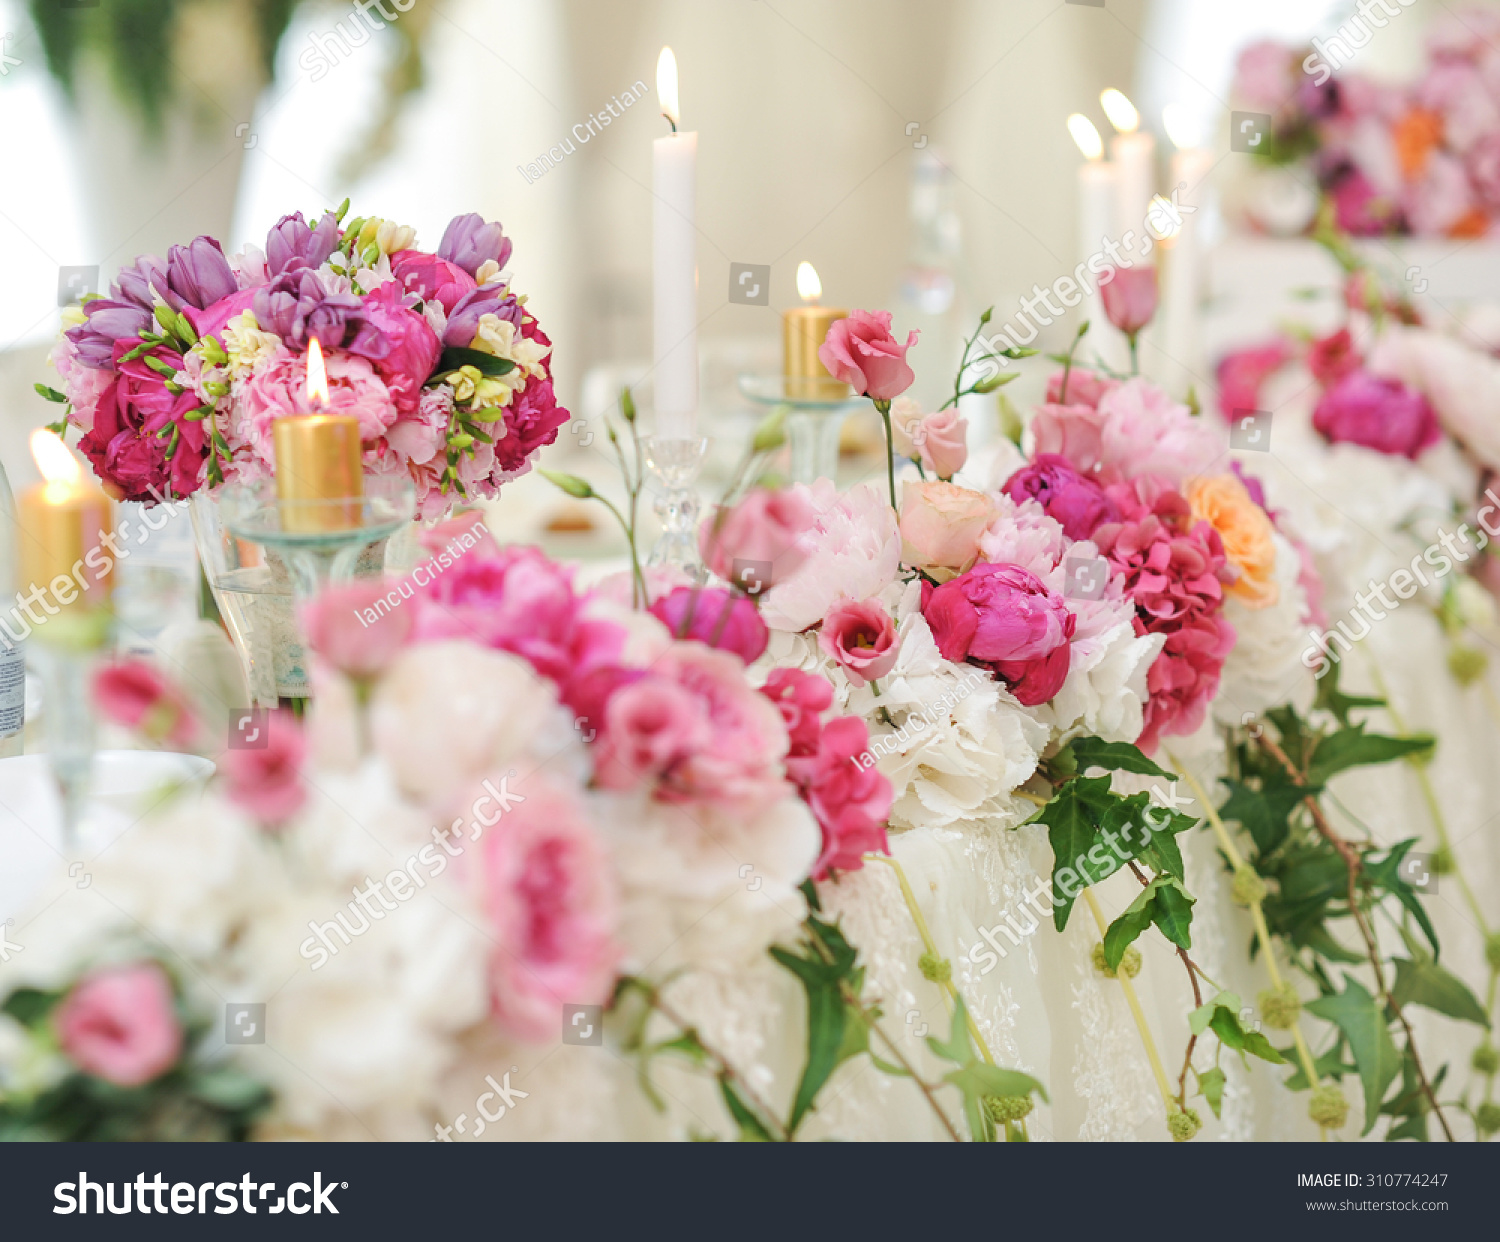 Wedding Decoration On Table Floral Arrangements Stock Photo (Edit ...